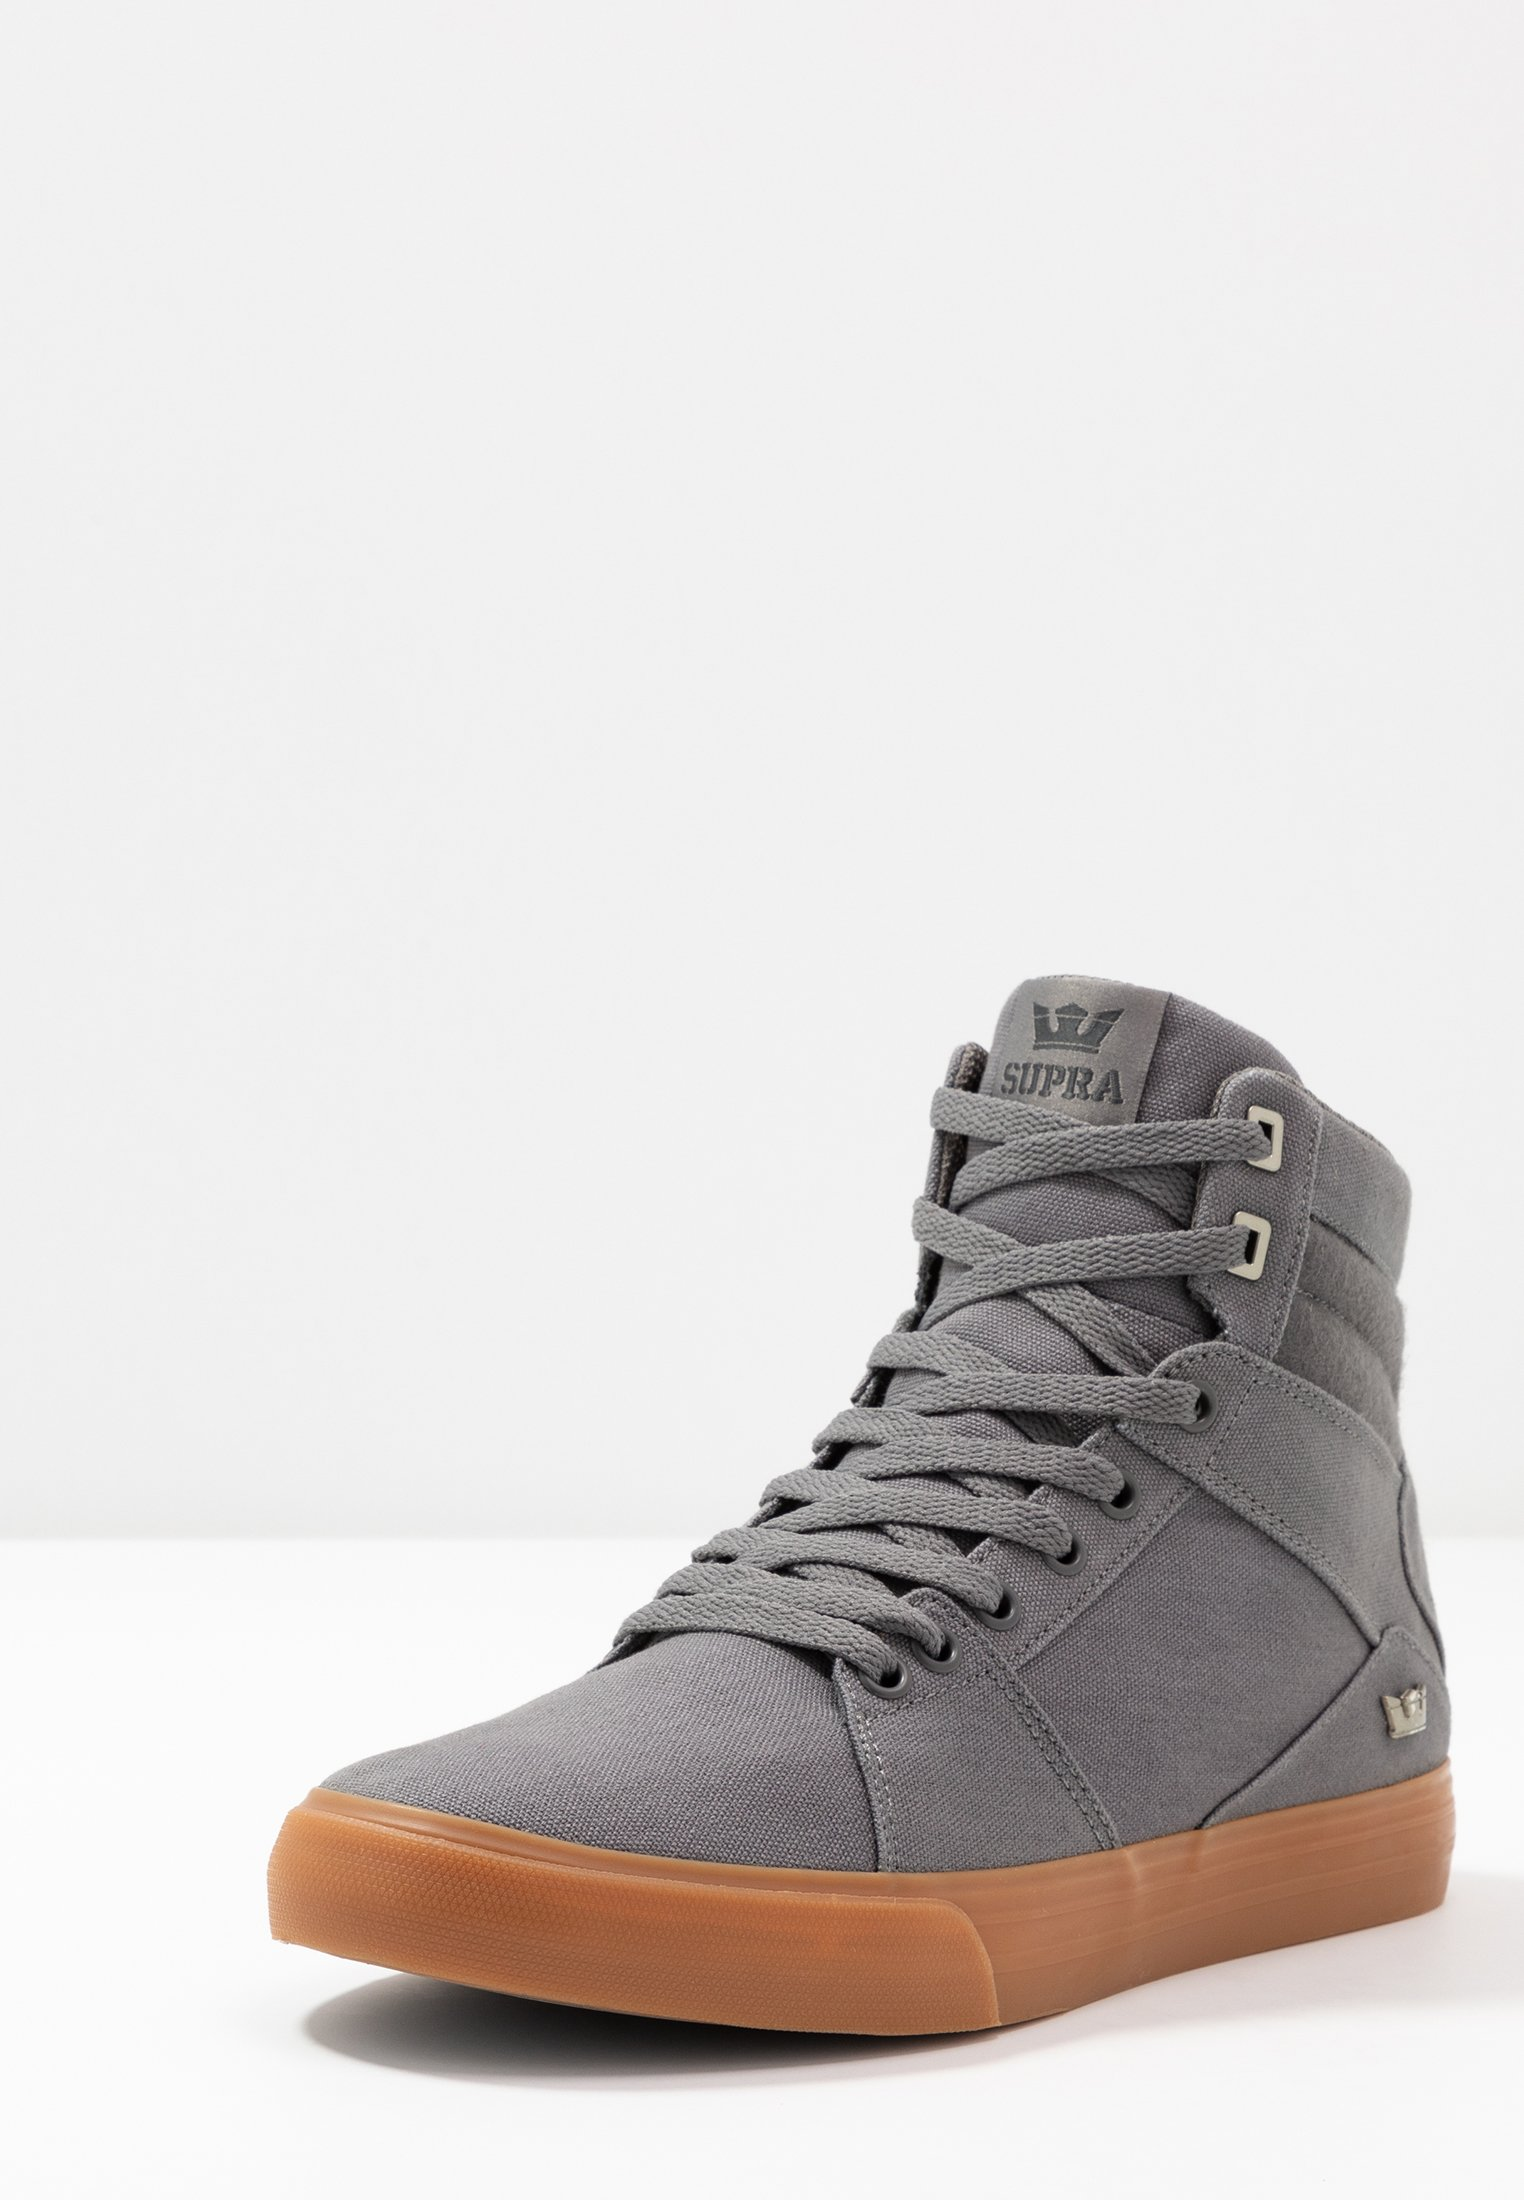 Supra charcoal montantes ALUMINUMBaskets Supra ALUMINUMBaskets Supra ALUMINUMBaskets montantes montantes charcoal vn0Nm8w